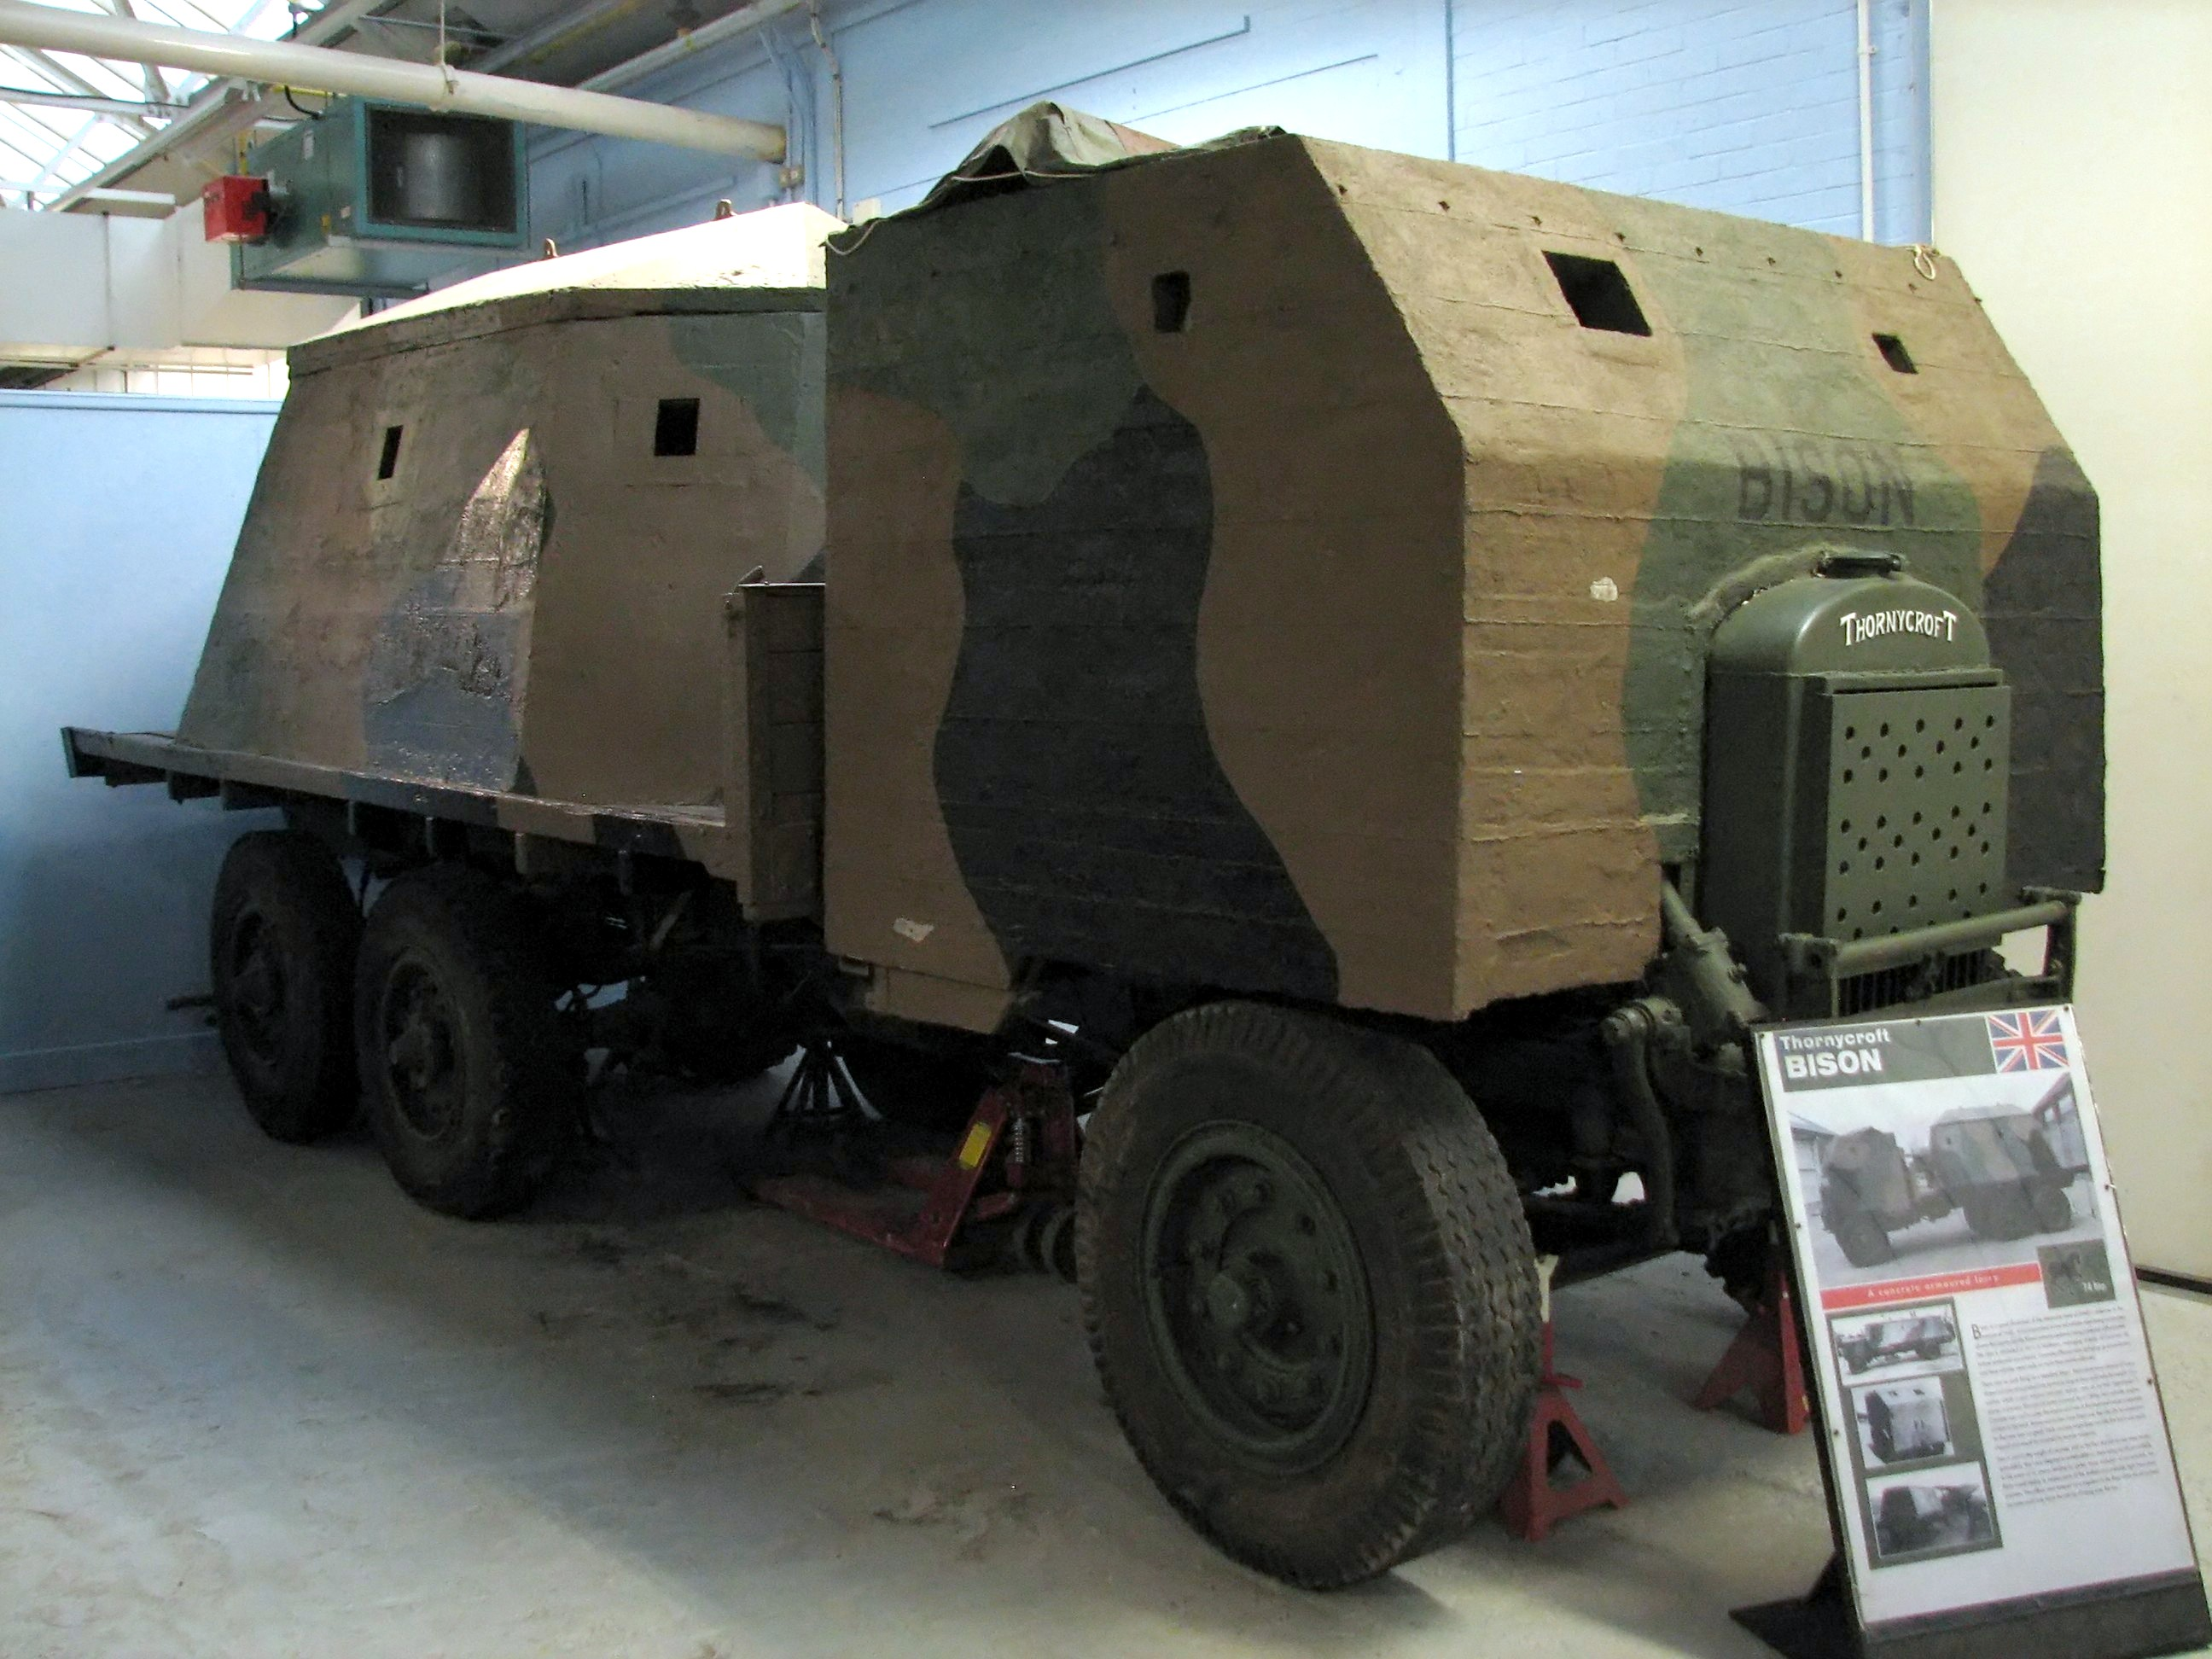 https://upload.wikimedia.org/wikipedia/commons/7/73/Thornycroft_Bison_1_Bovington.jpg